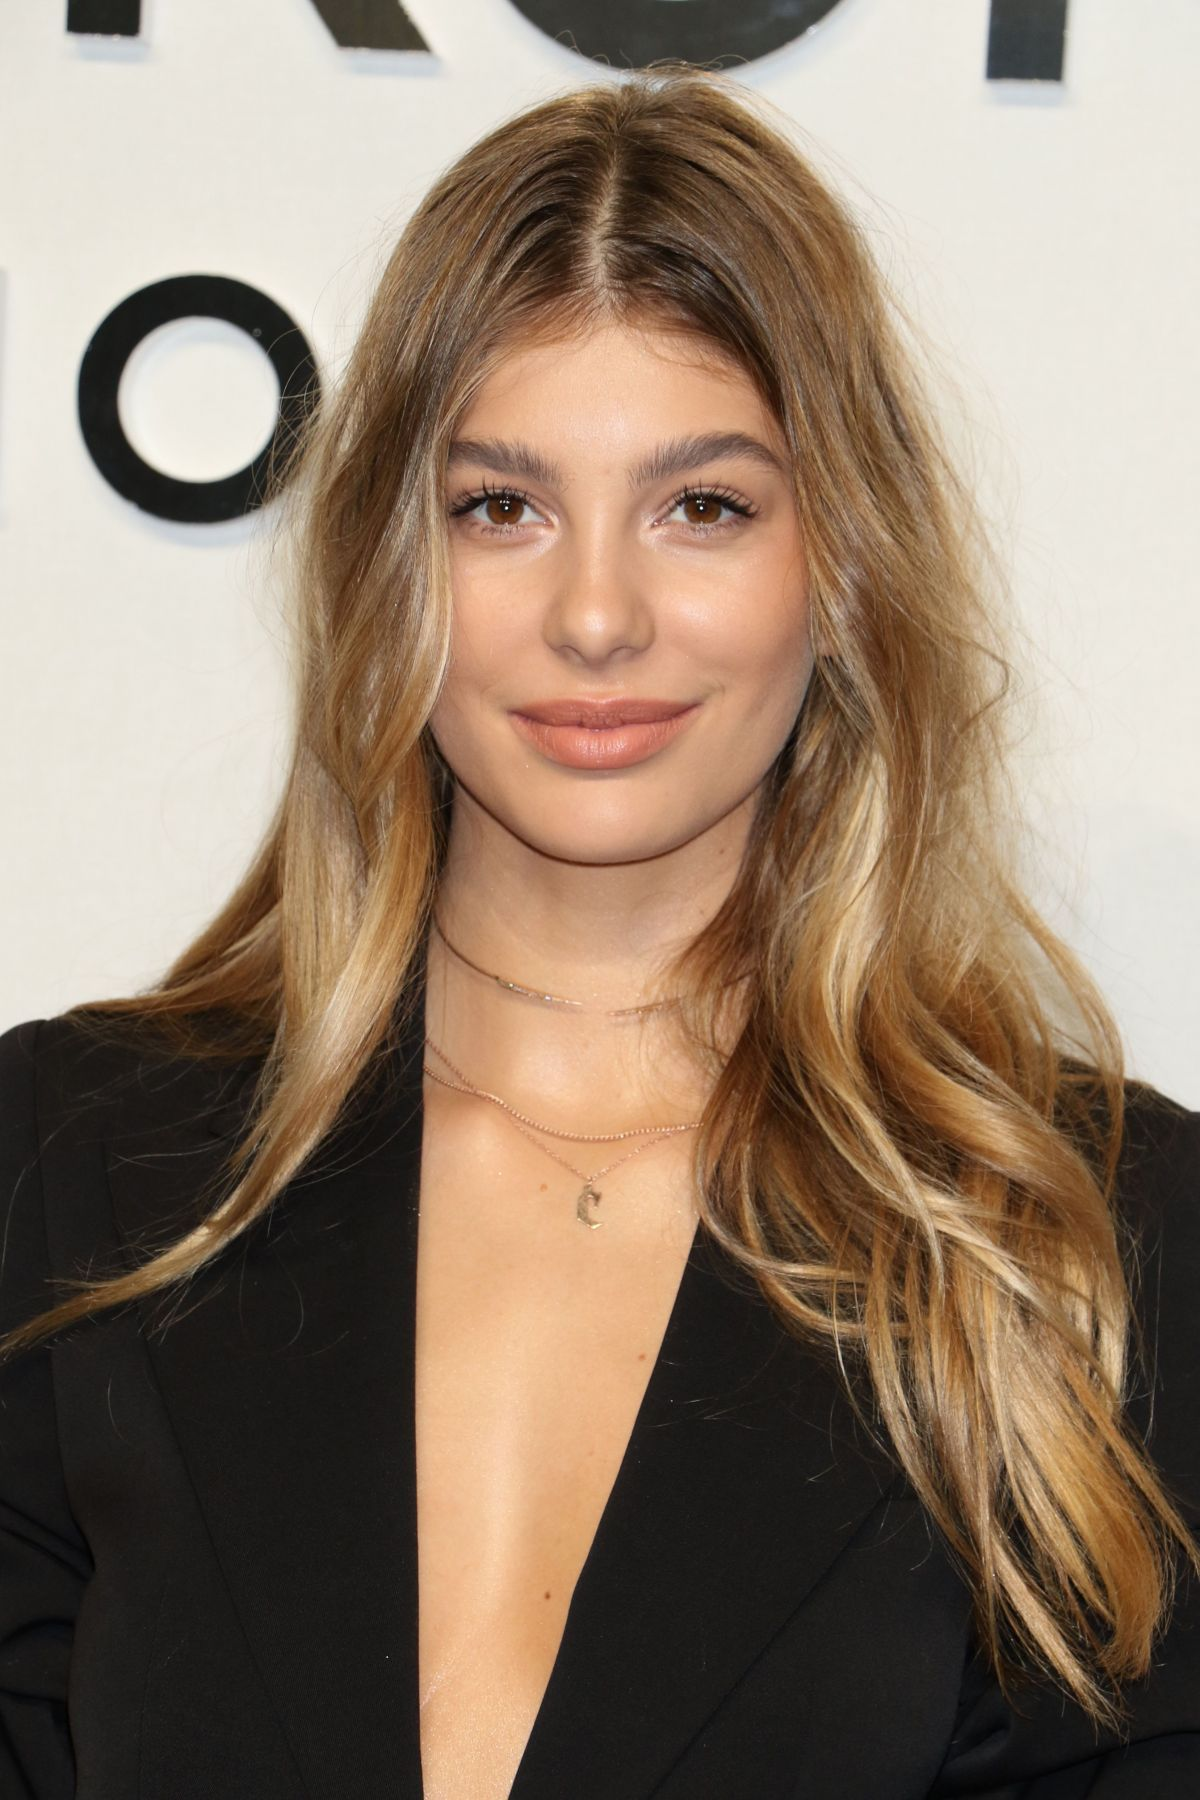 Photos Cami Morrone naked (32 photos), Sideboobs